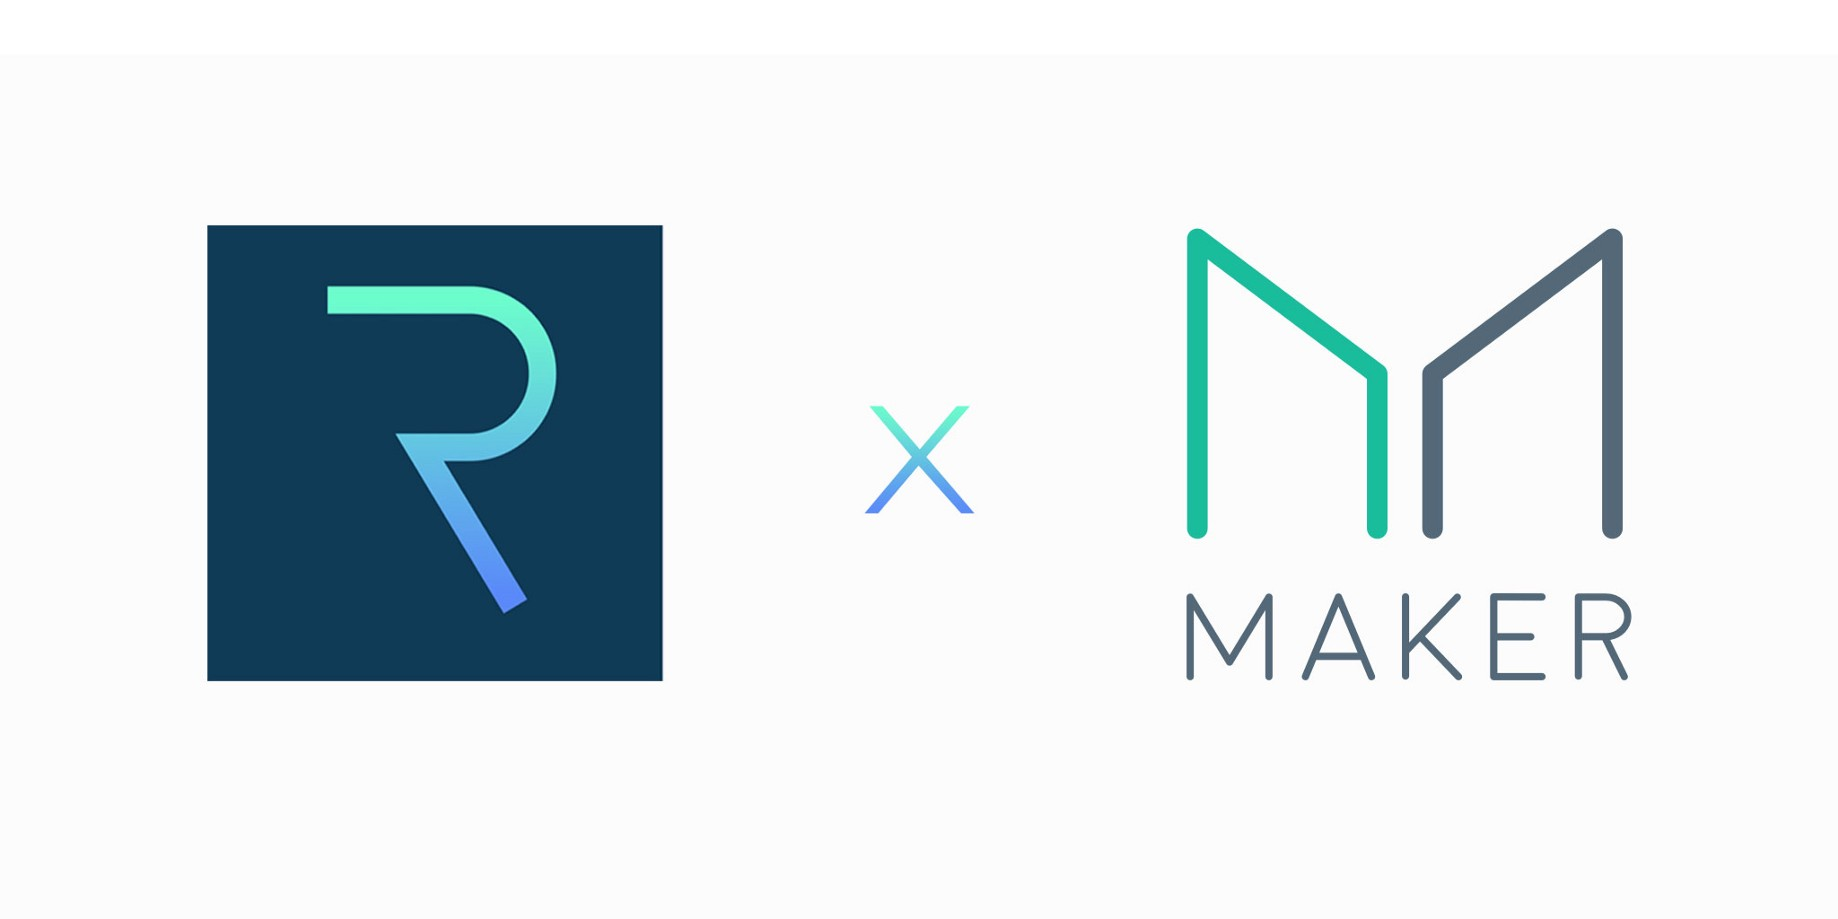 Request Network cooperates with MakerDAO to Increase Stability in